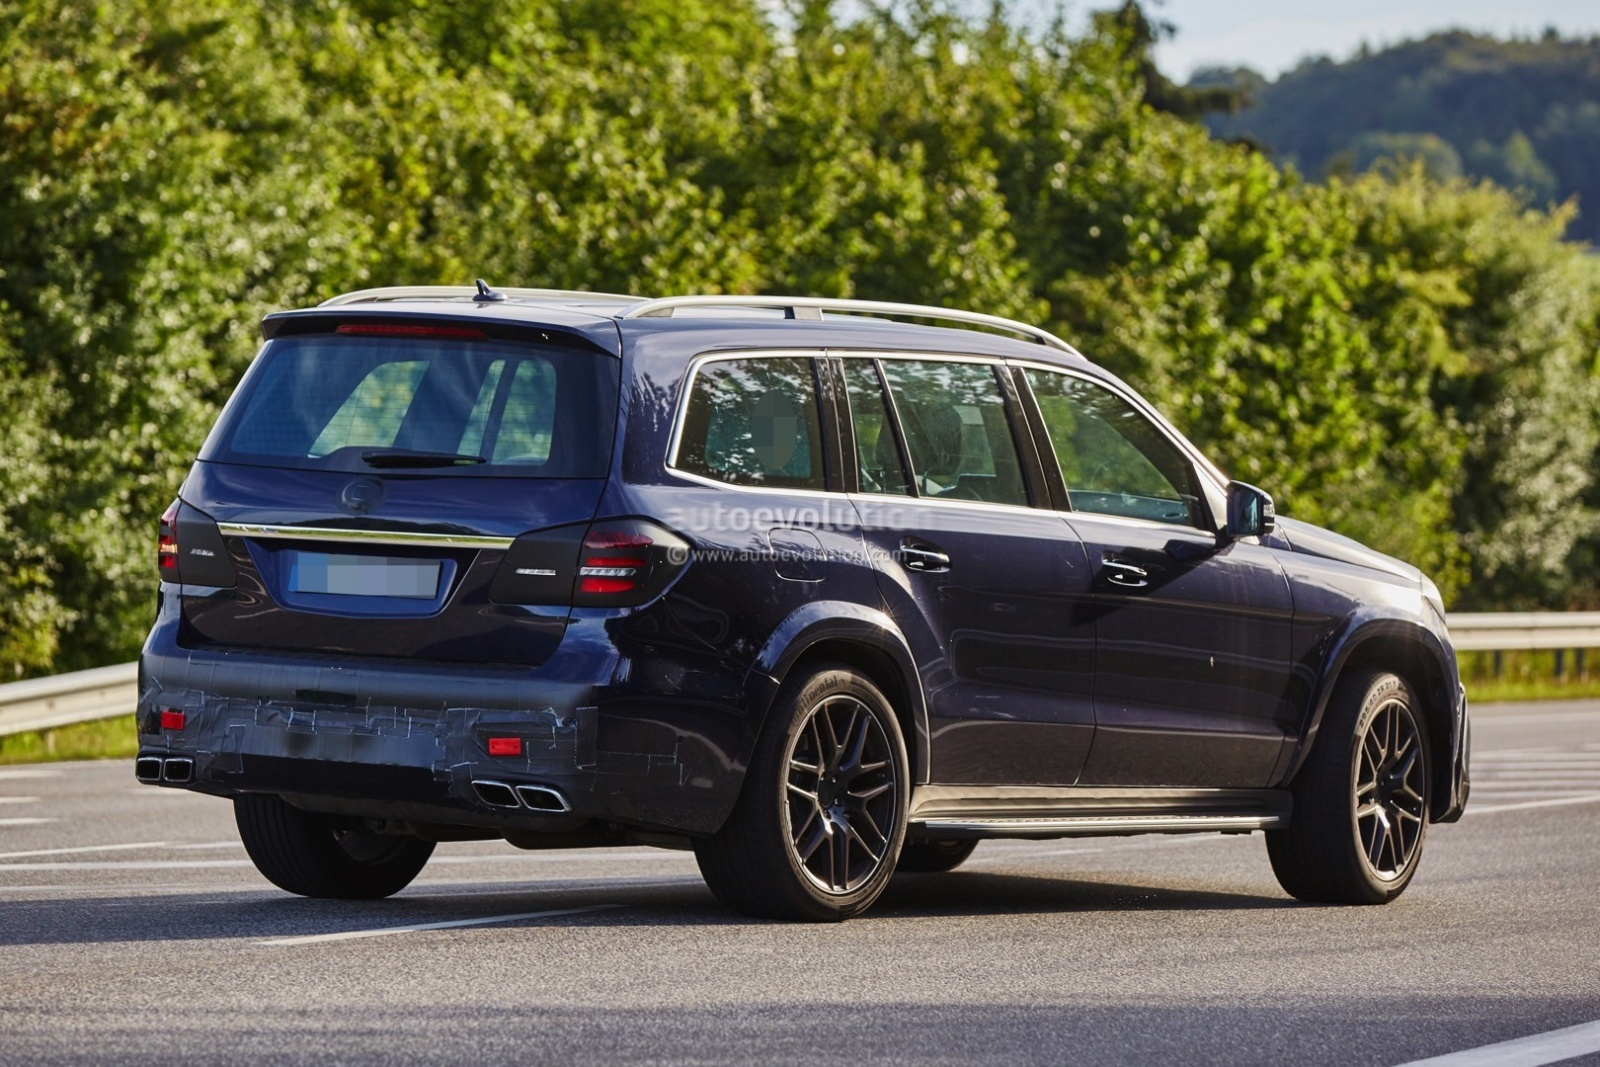 2016-mercedes-amg-gls63-is-getting-ready-to-roll-in-a-bend-near-you-photo-gallery_8